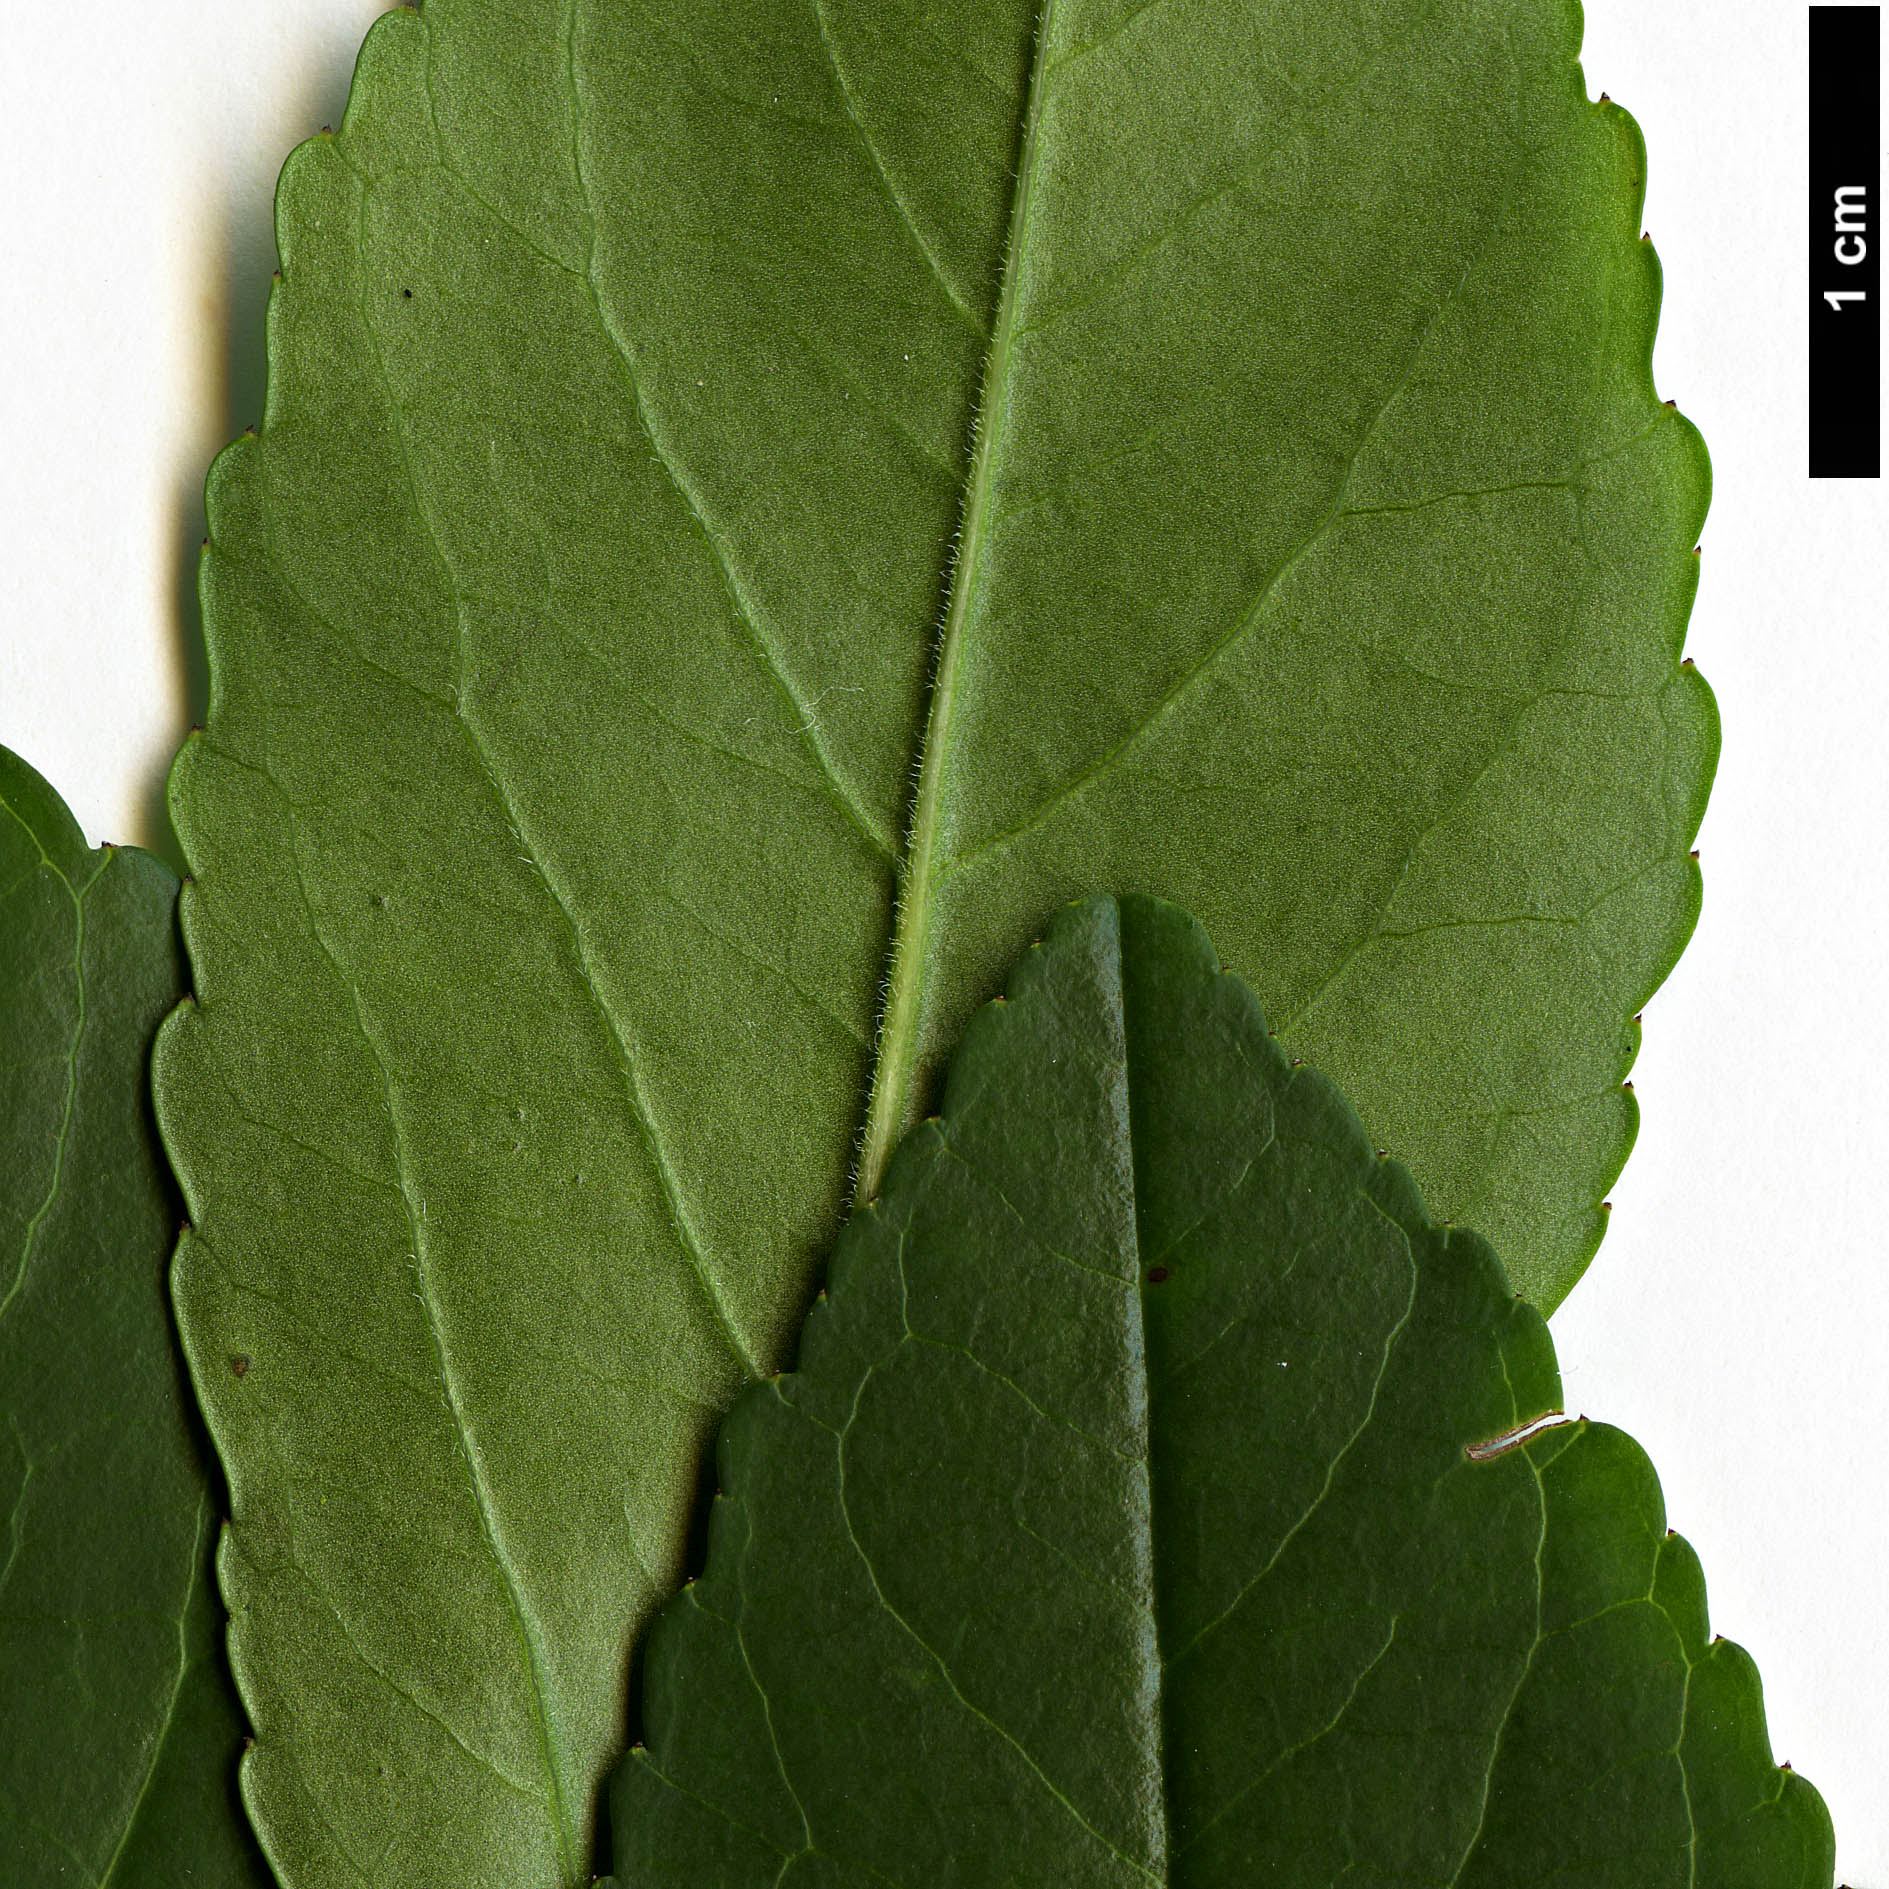 High resolution image: Family: Aquifoliaceae - Genus: Ilex - Taxon: decidua